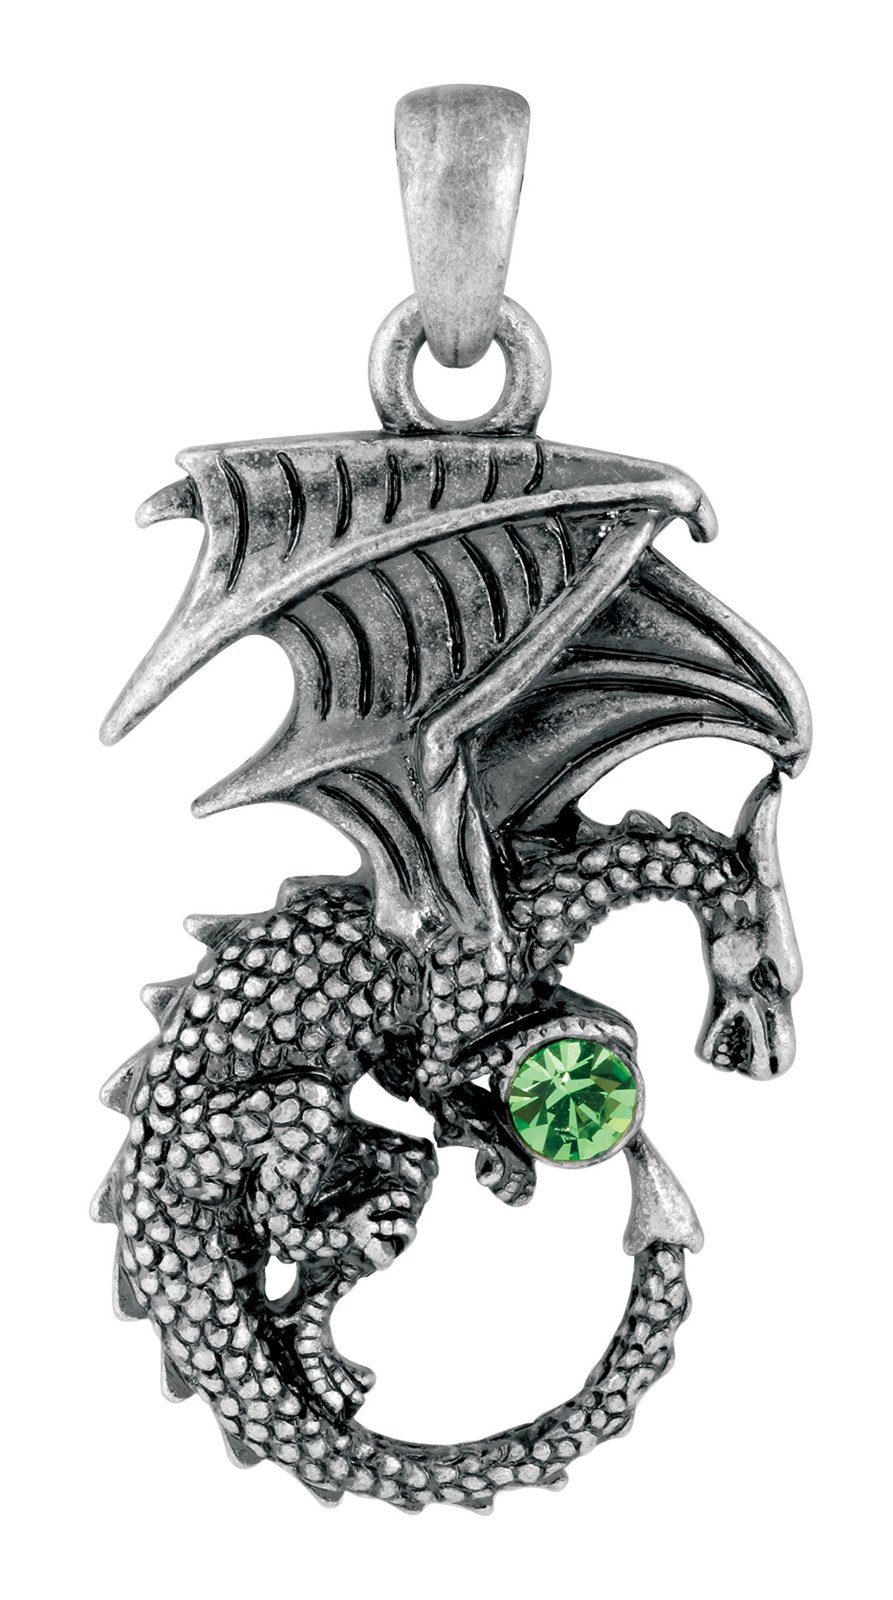 YTC Summit New Green Ladon Dragon Pendant Collectible Accessory Necklace Serpent